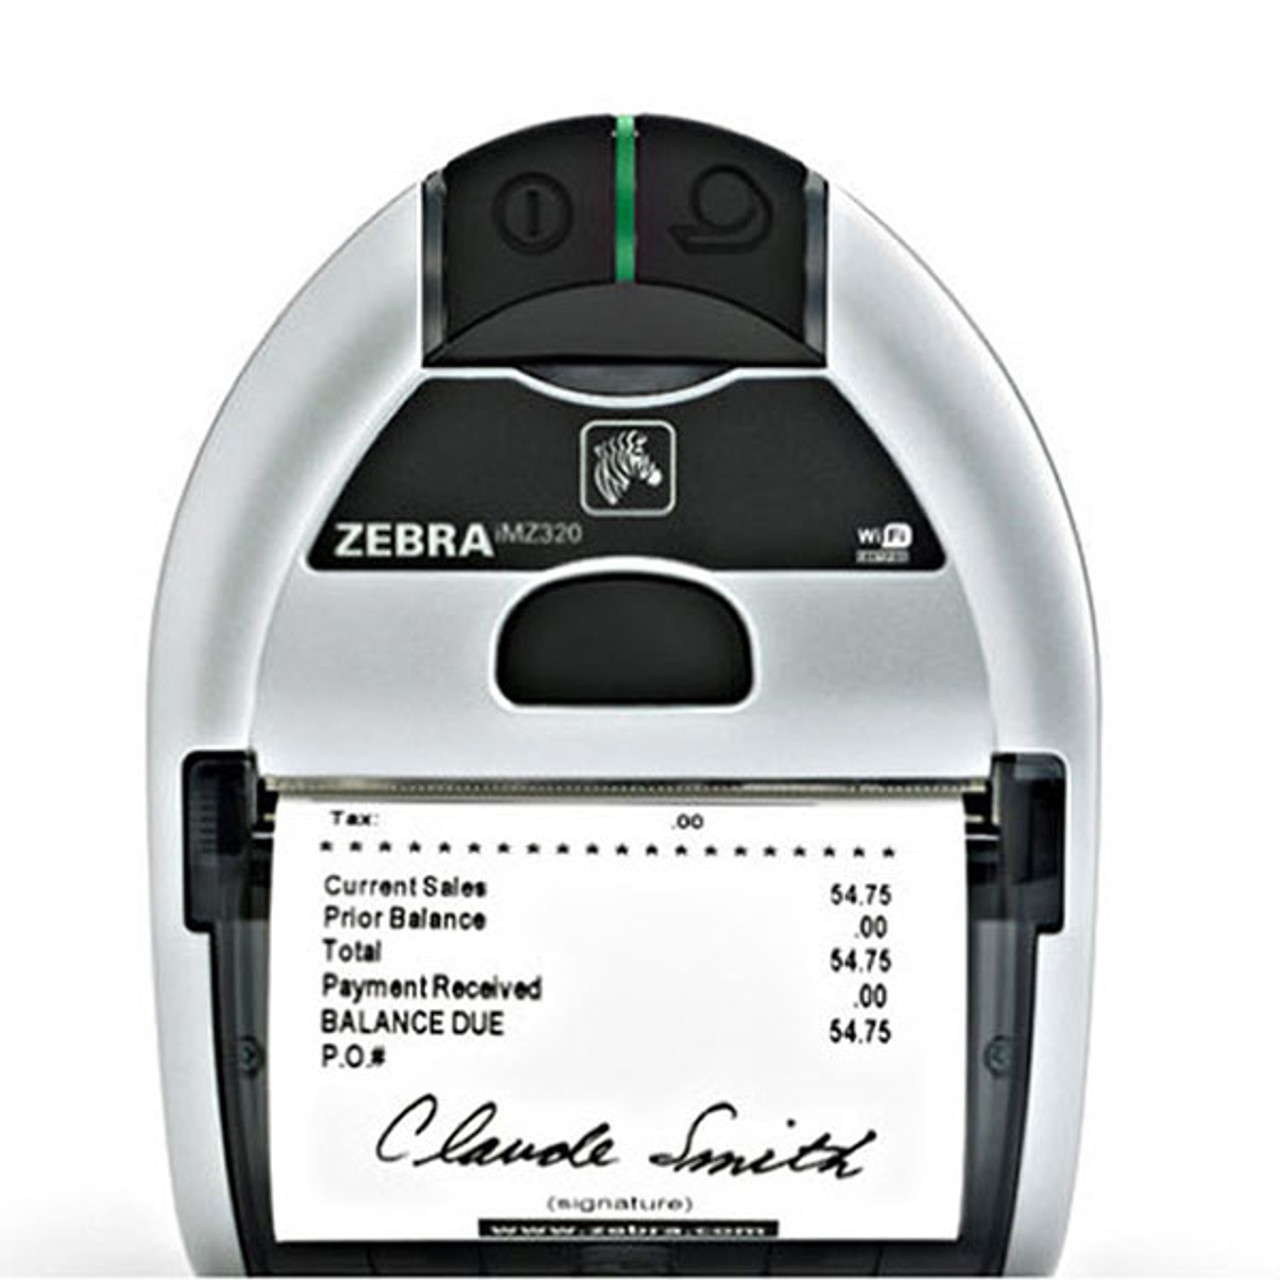 Zebra iMZ320 Mobile Printer - Mobile Receipt Printers